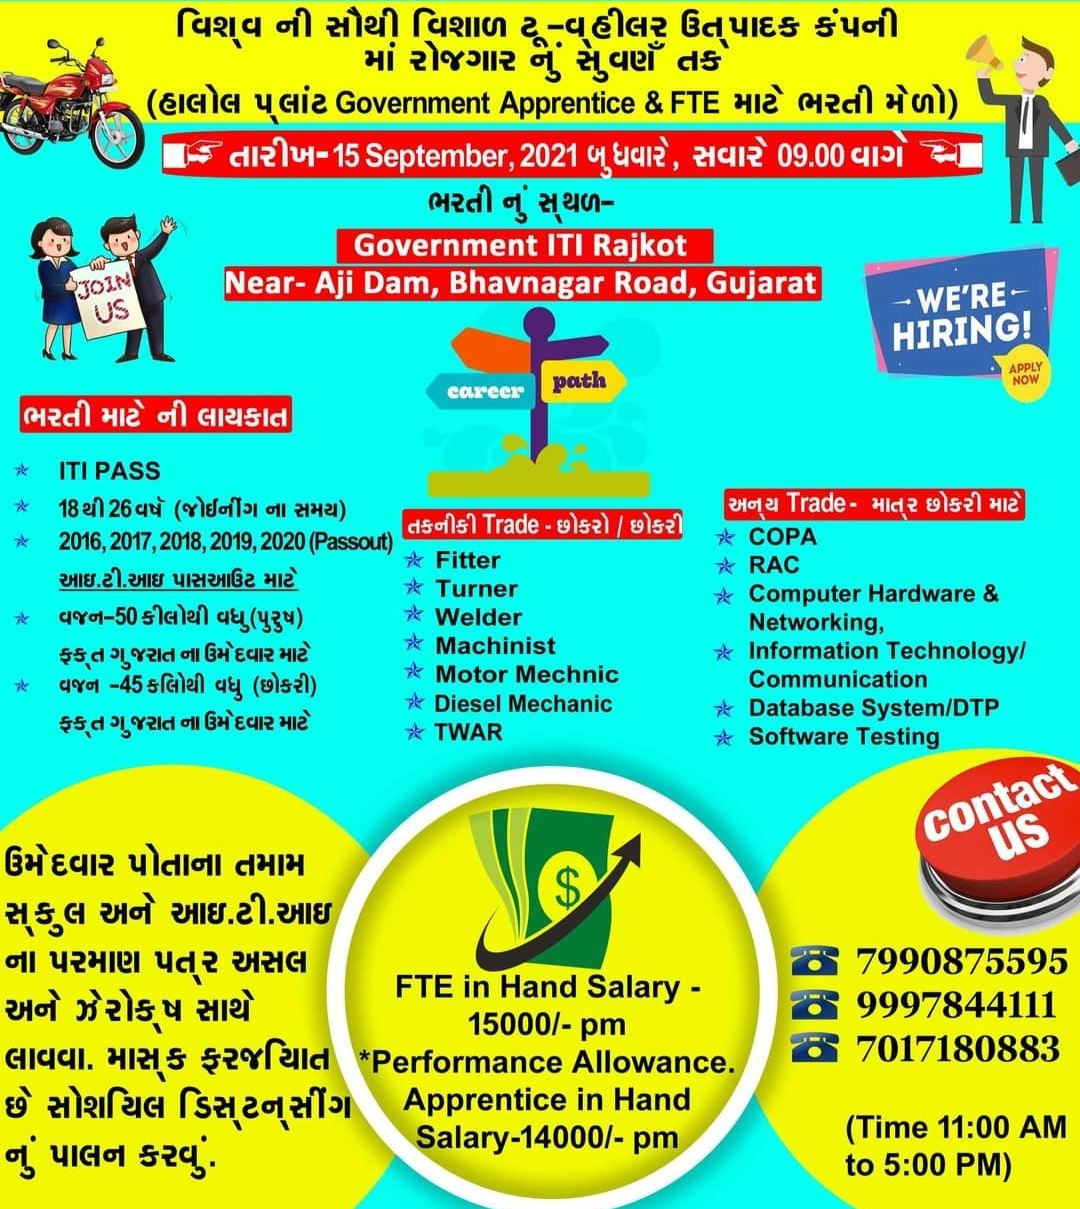 ITI Campus Job Placement For Hero Two Wheeler Manufacturing Company on 15th September' 2021 At Govt ITI Rajkot, Gujarat